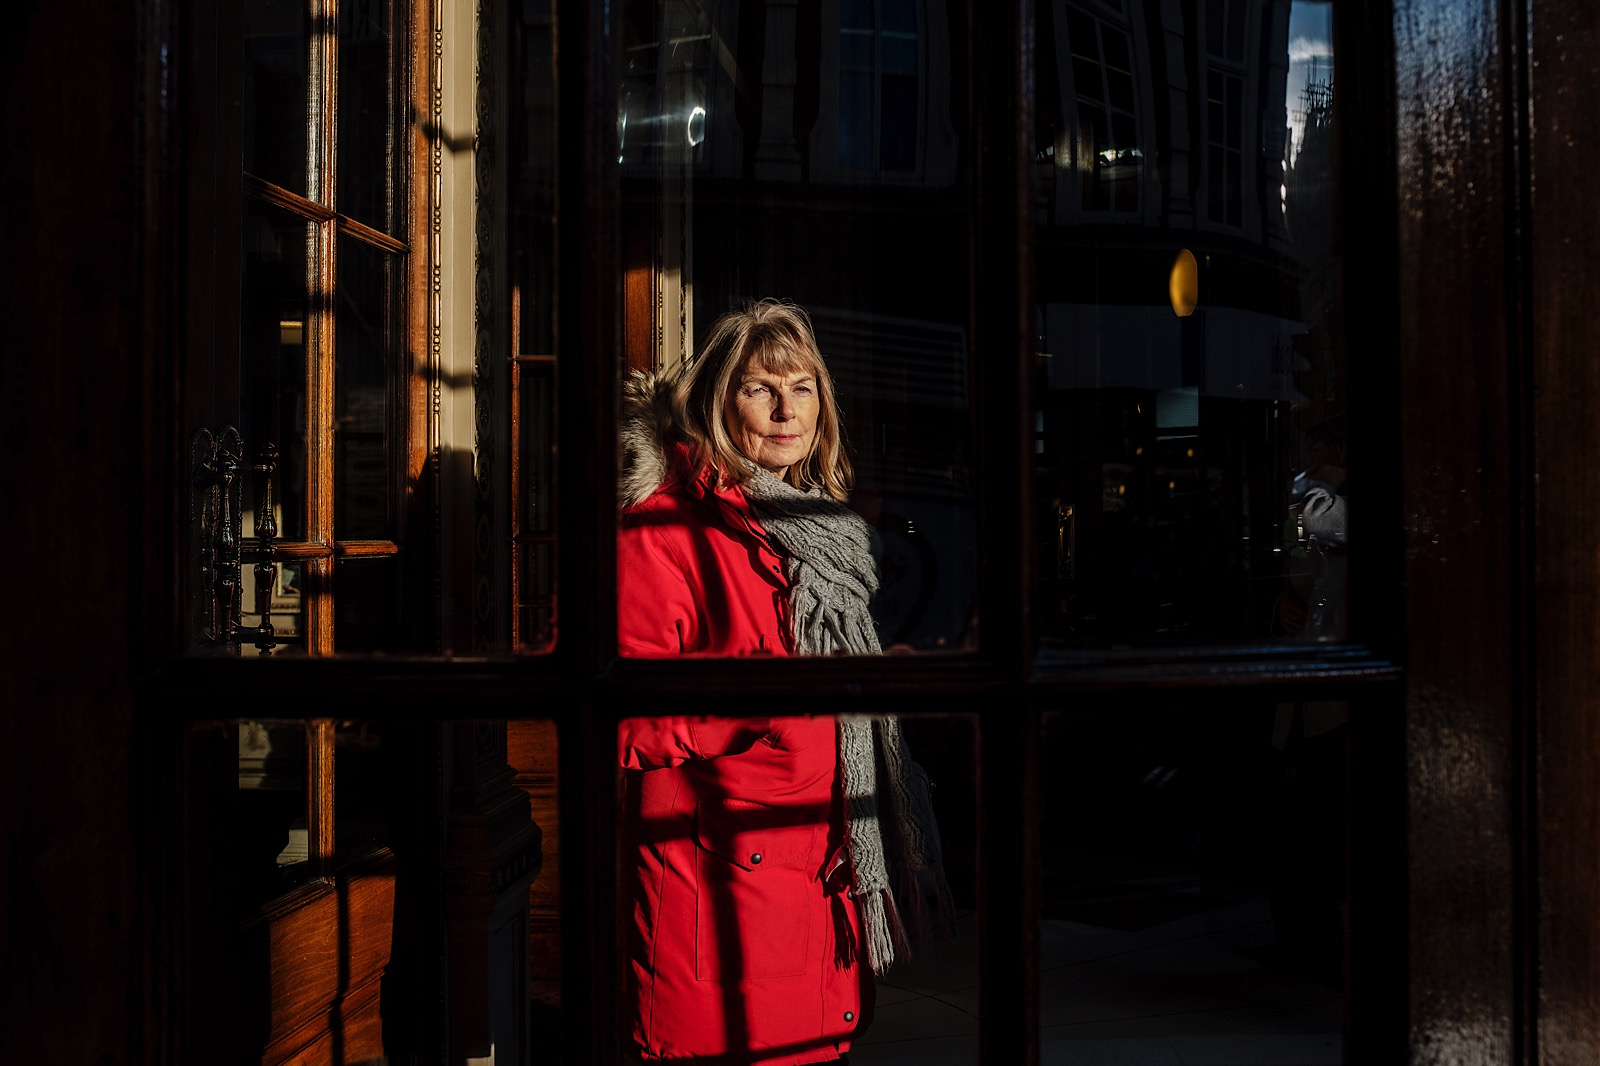 Candid Portrait of a Lady wearing a bright red jacket looking out of the window in London